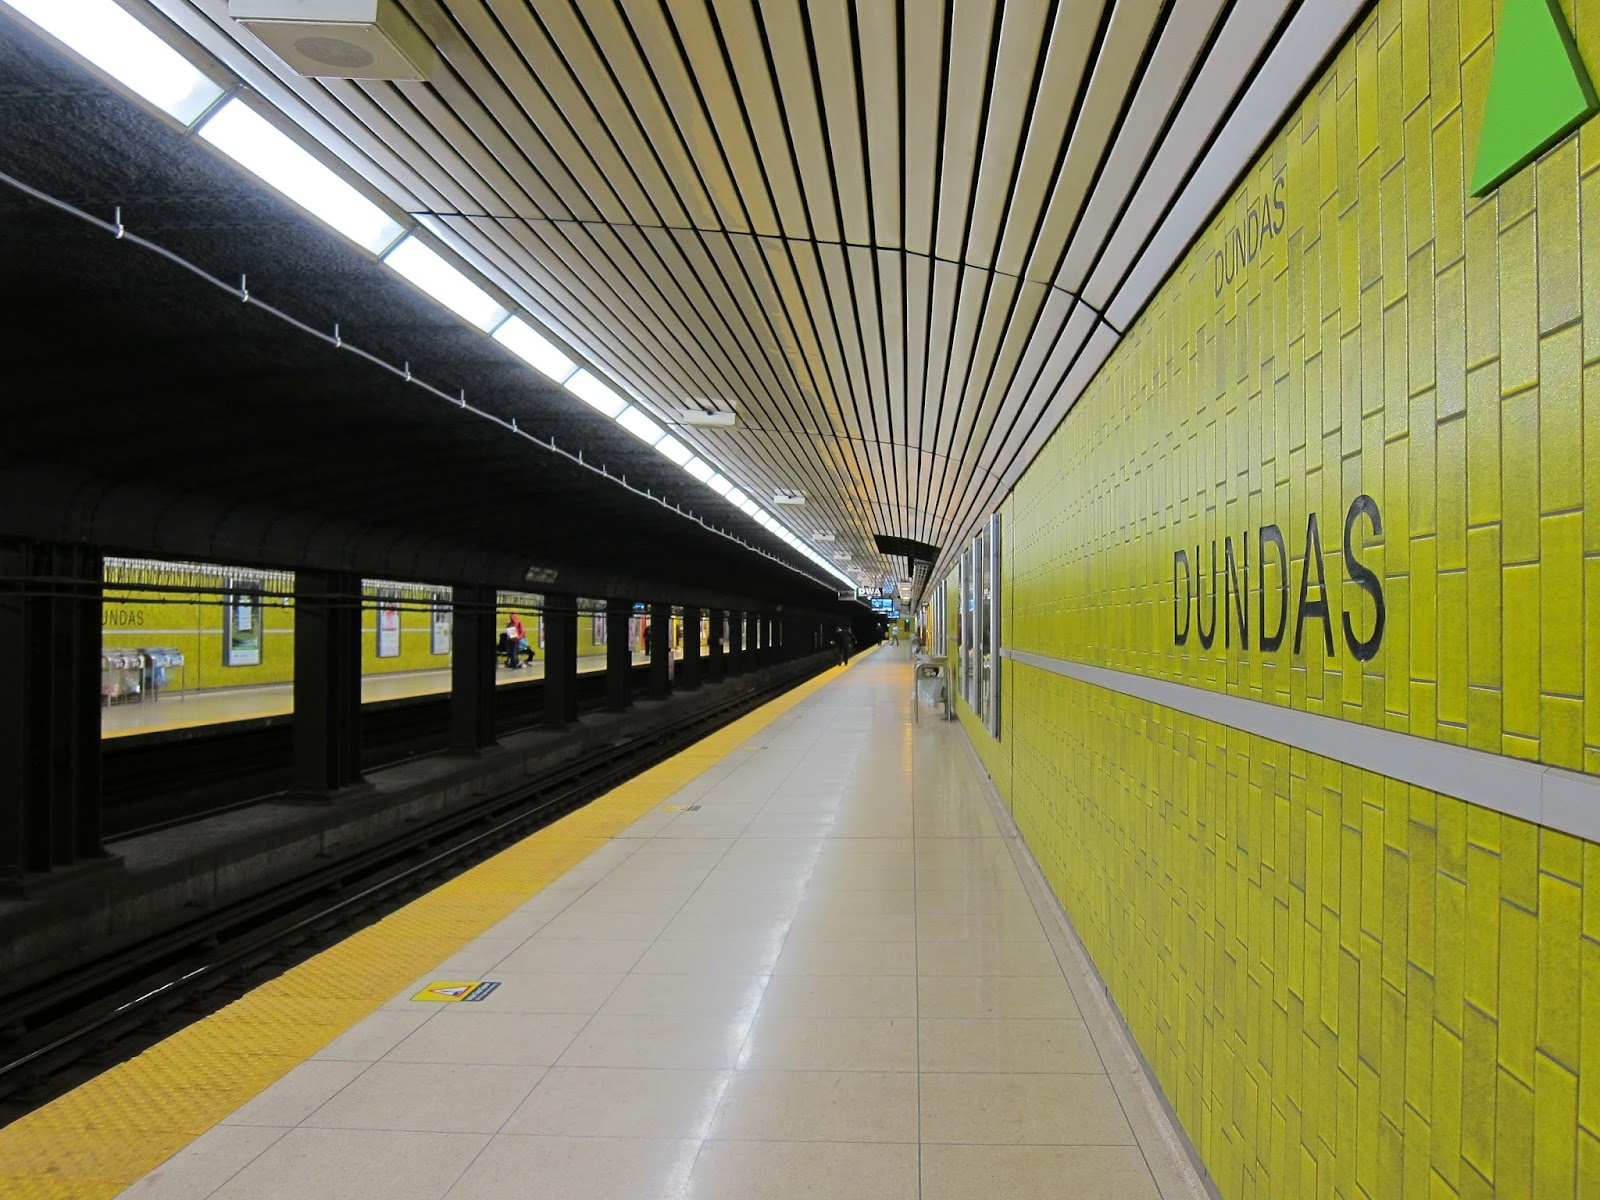 Dundas station platform view